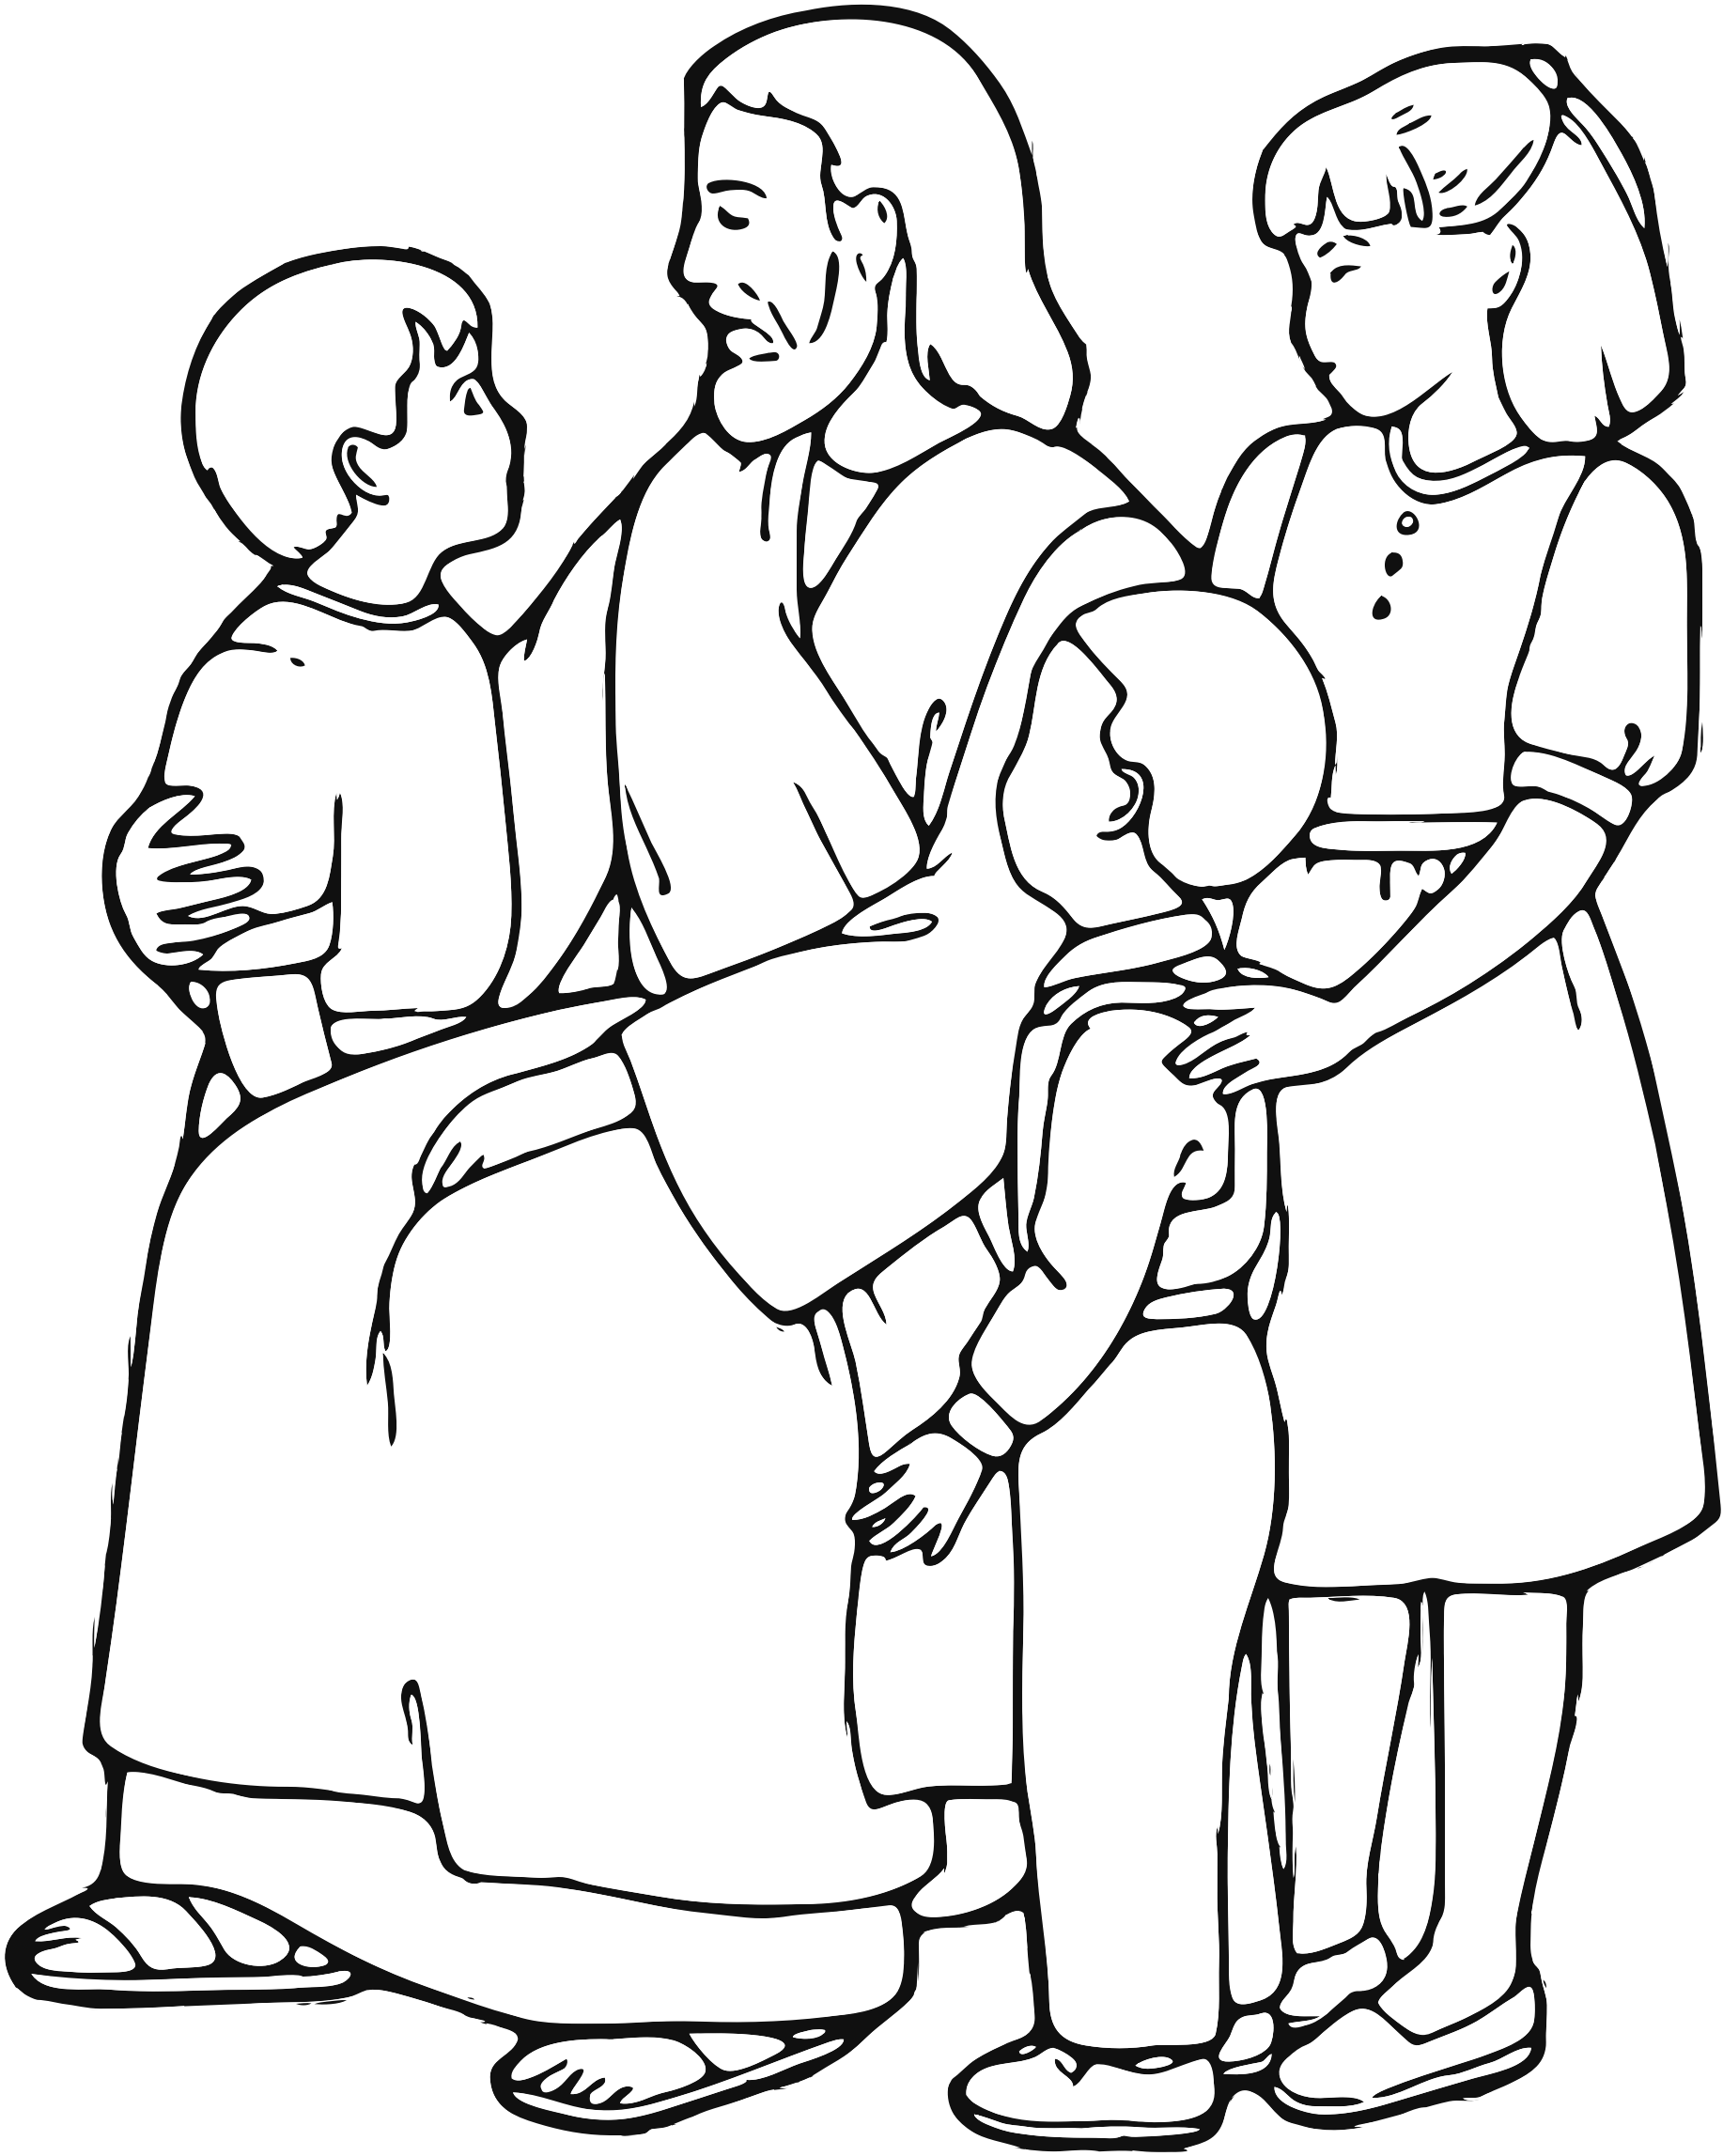 Znalezione Obrazy Dla Zapytania Jesus And Children Jesus Coloring Pages Bible Coloring Pages Lds Coloring Pages